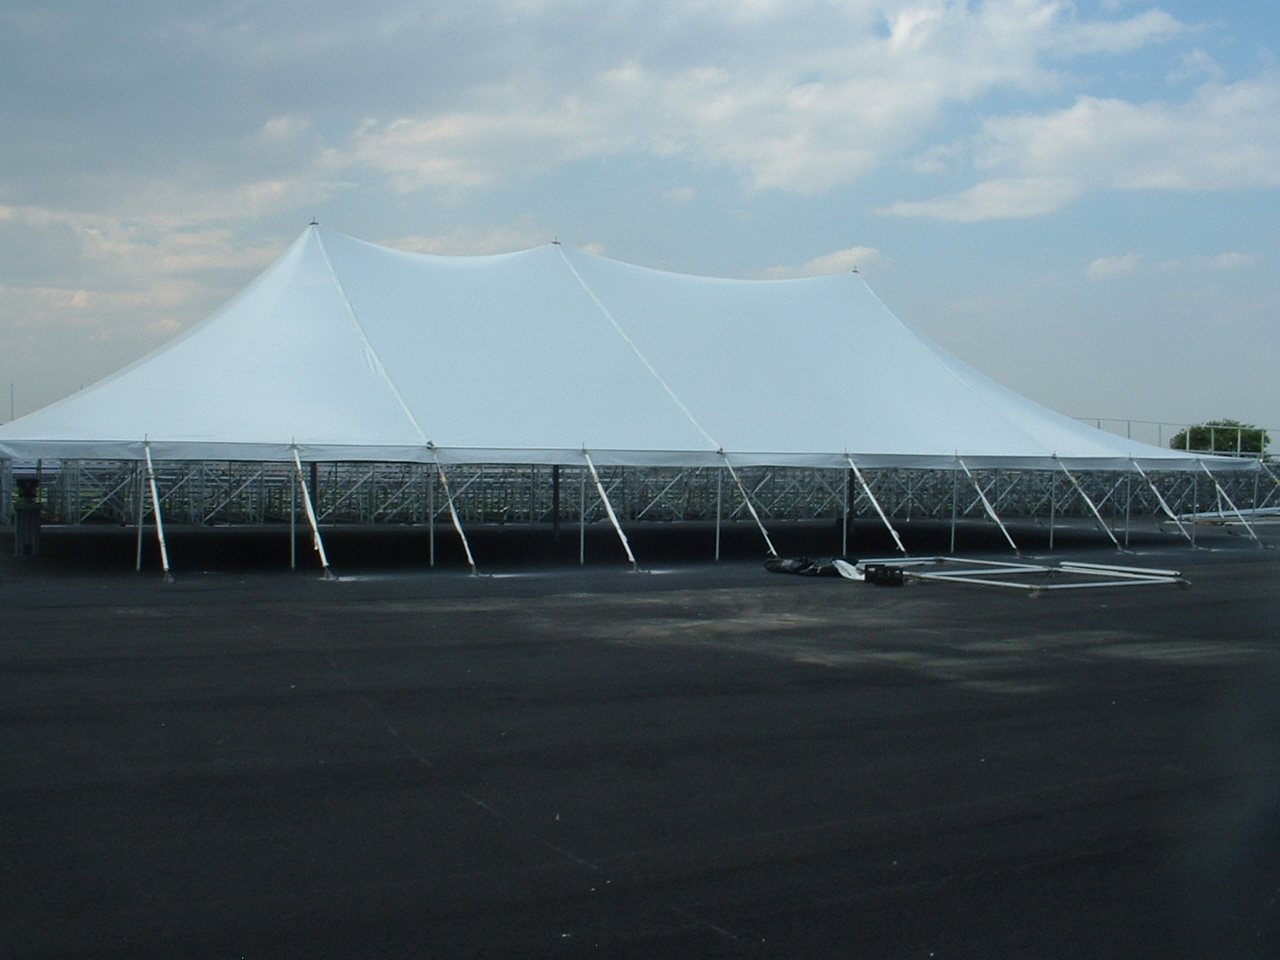 50ft EuroTent installed at an Airport in Brooklyn, New York